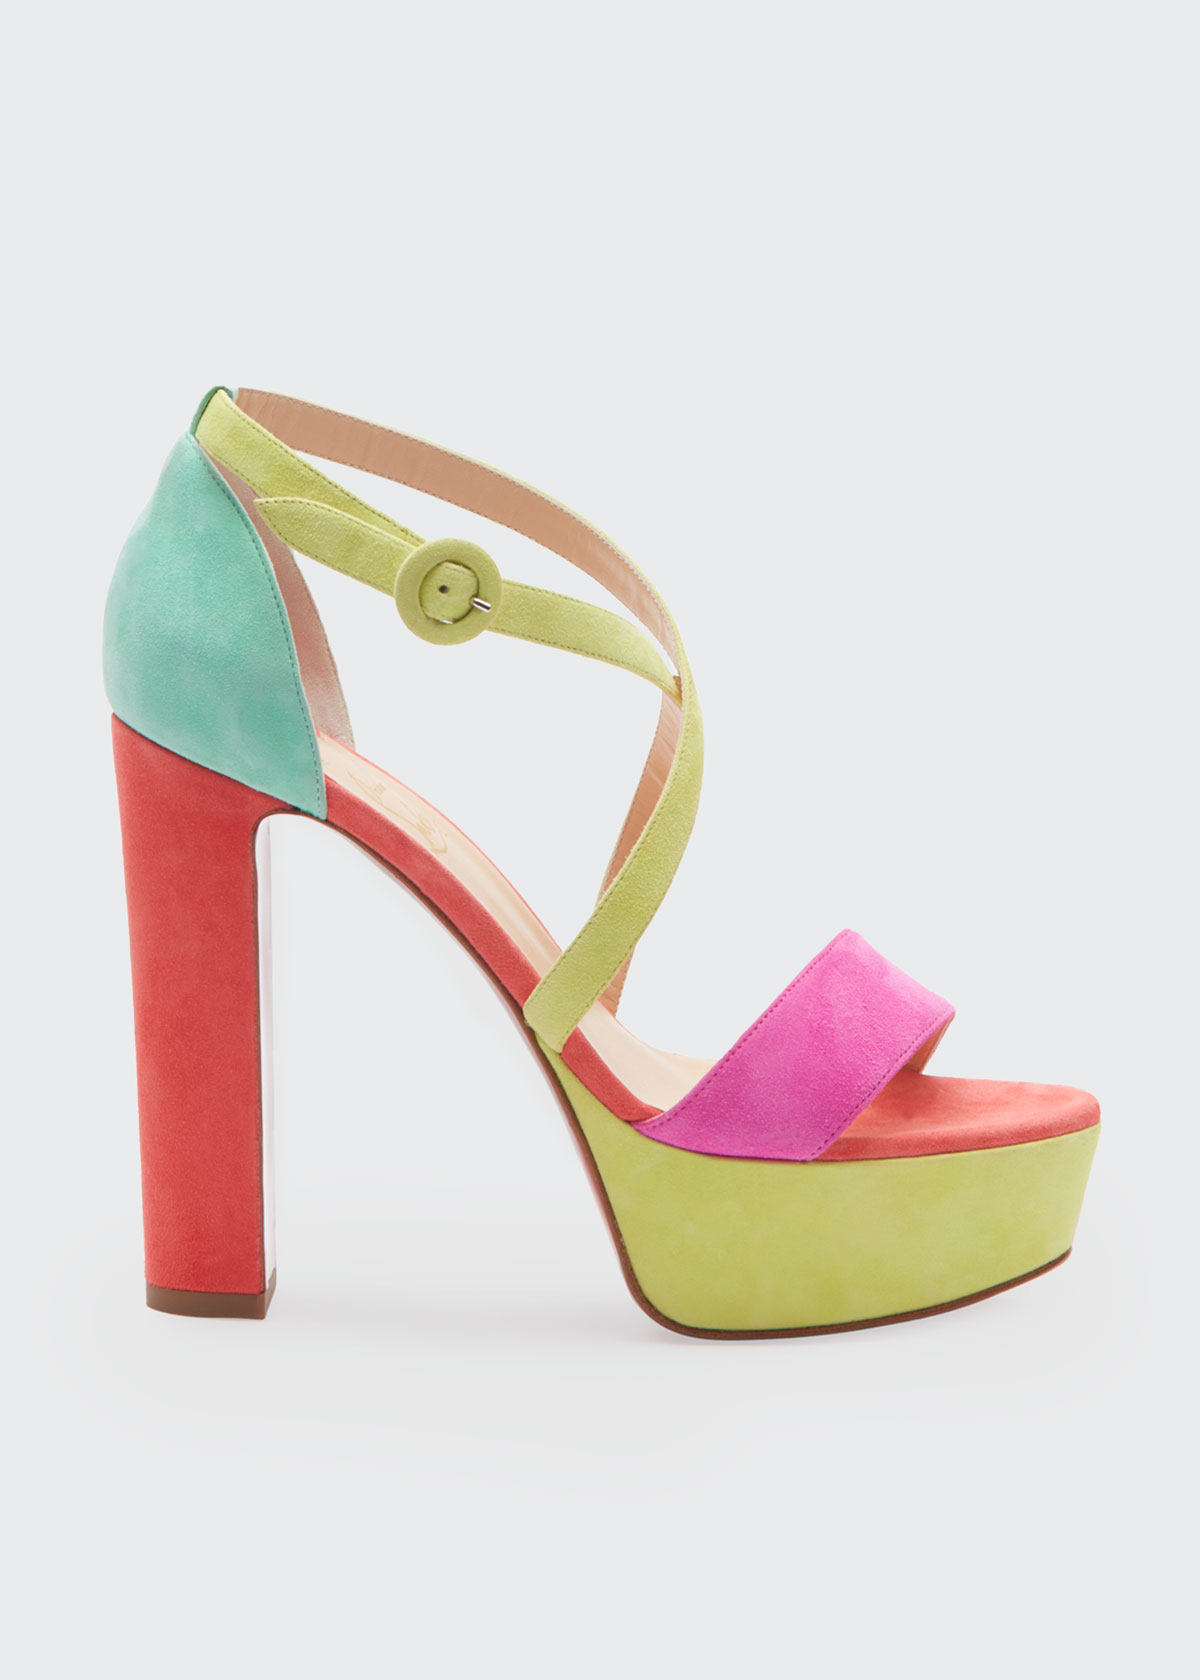 CHRISTIAN LOUBOUTIN LOUBI BEE ALTA 130 RED SOLE SANDALS